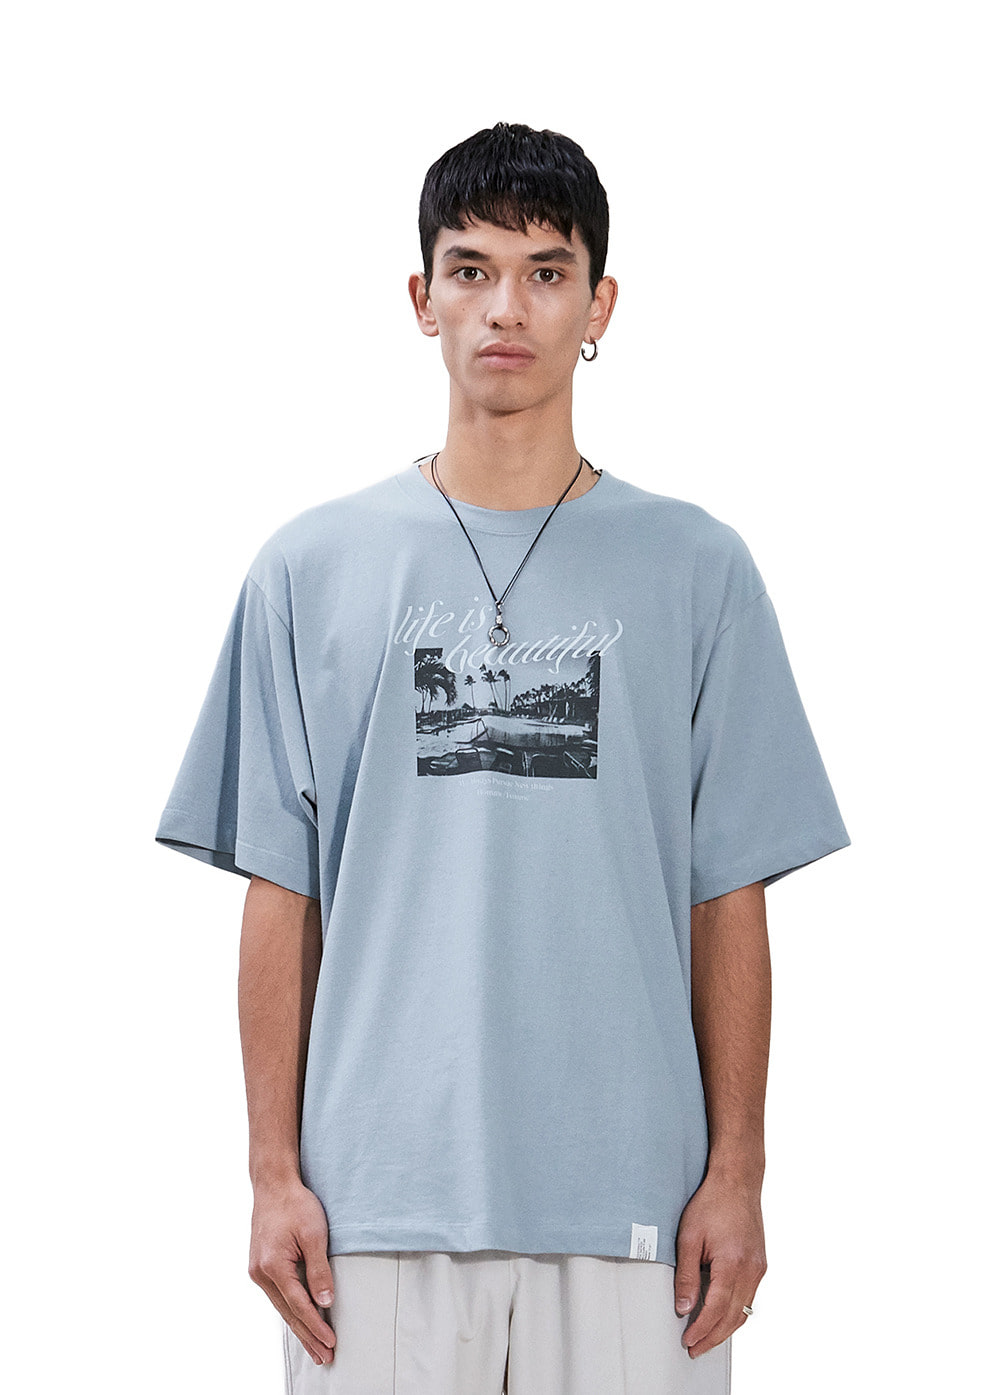 LAPILI BAY GRAPHIC TEE blue gray